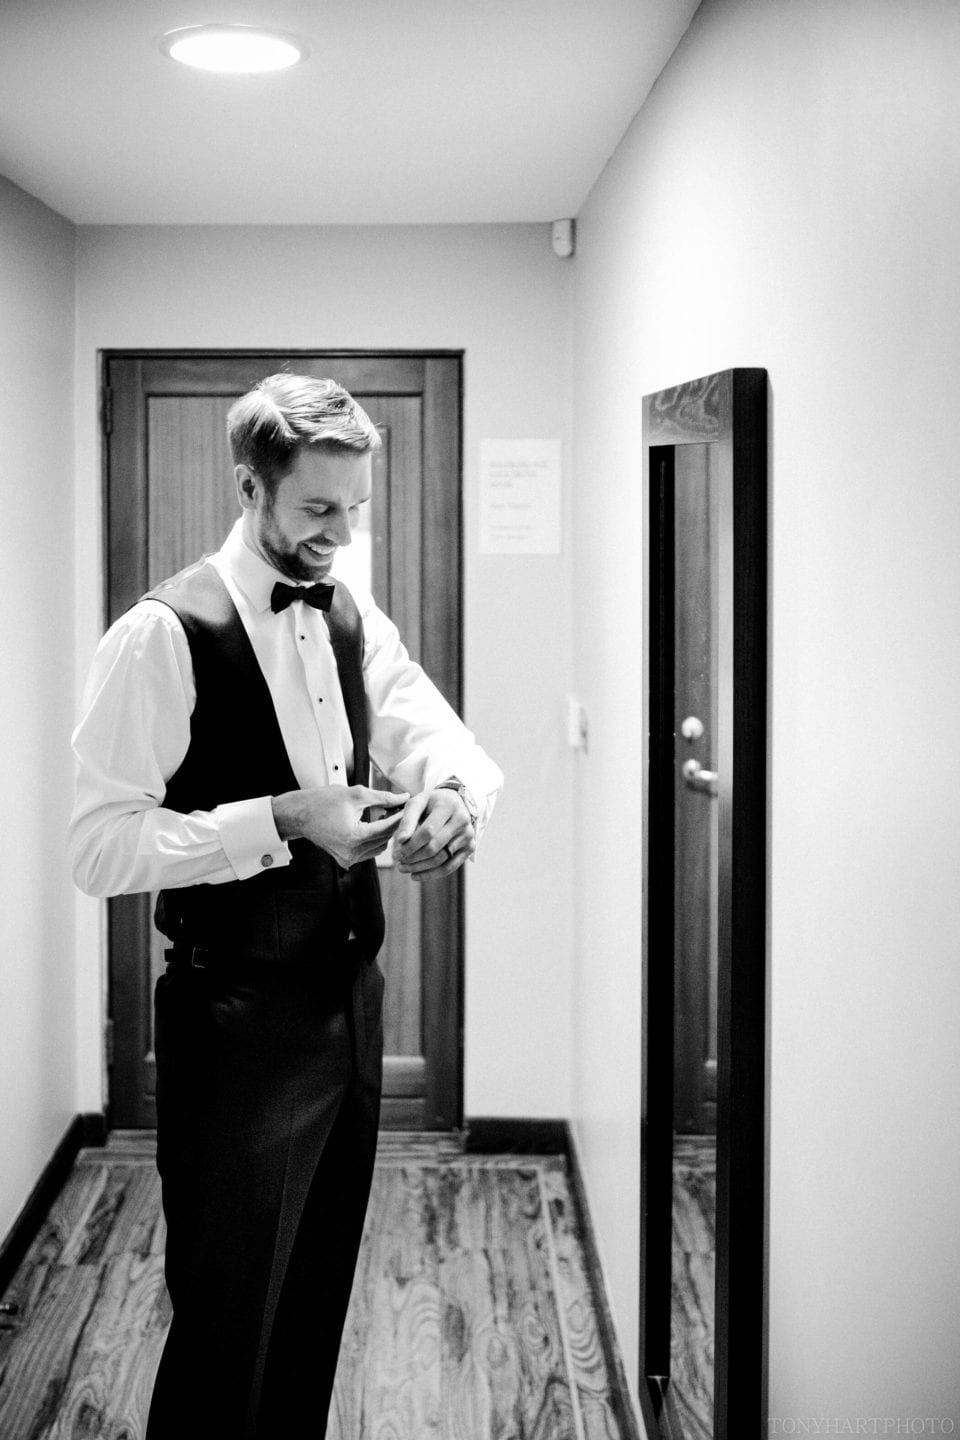 James getting his suit on - Northbrook Park Wedding Photography